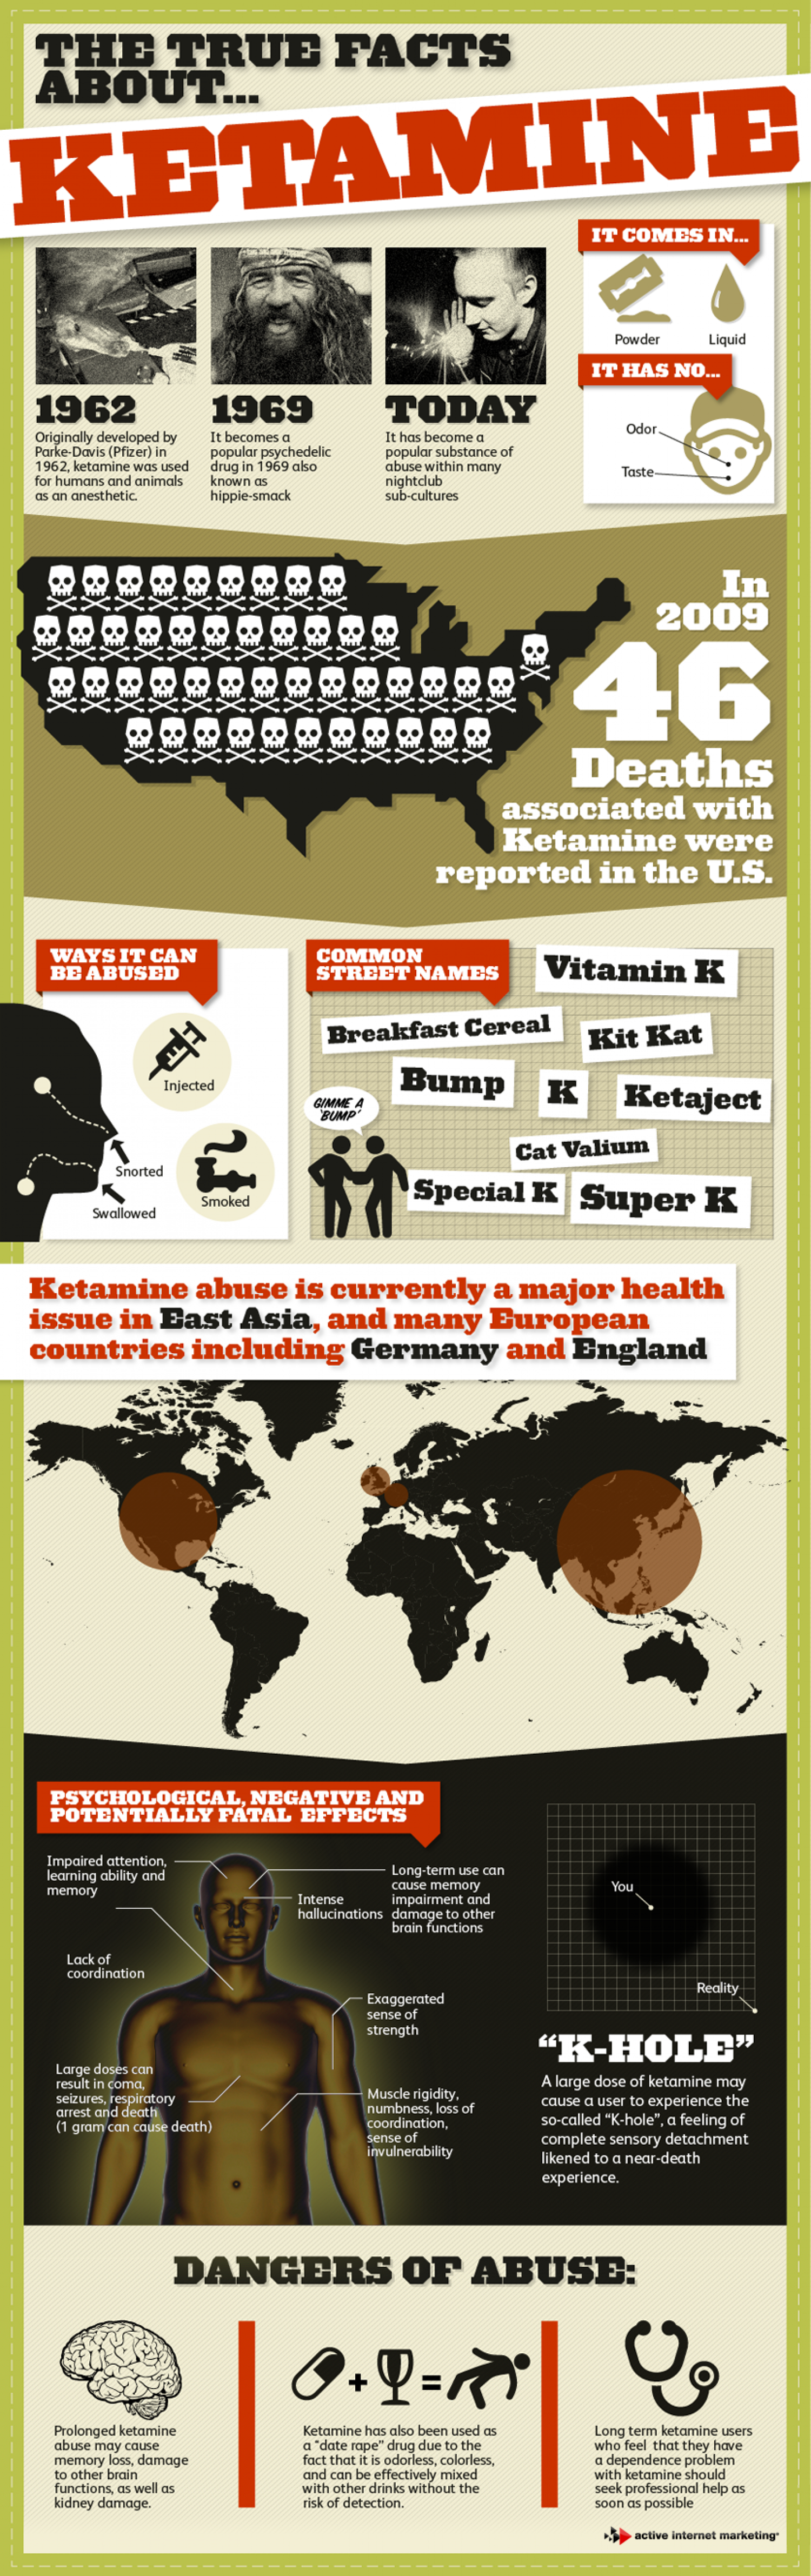 The True Facts About Ketamine Infographic